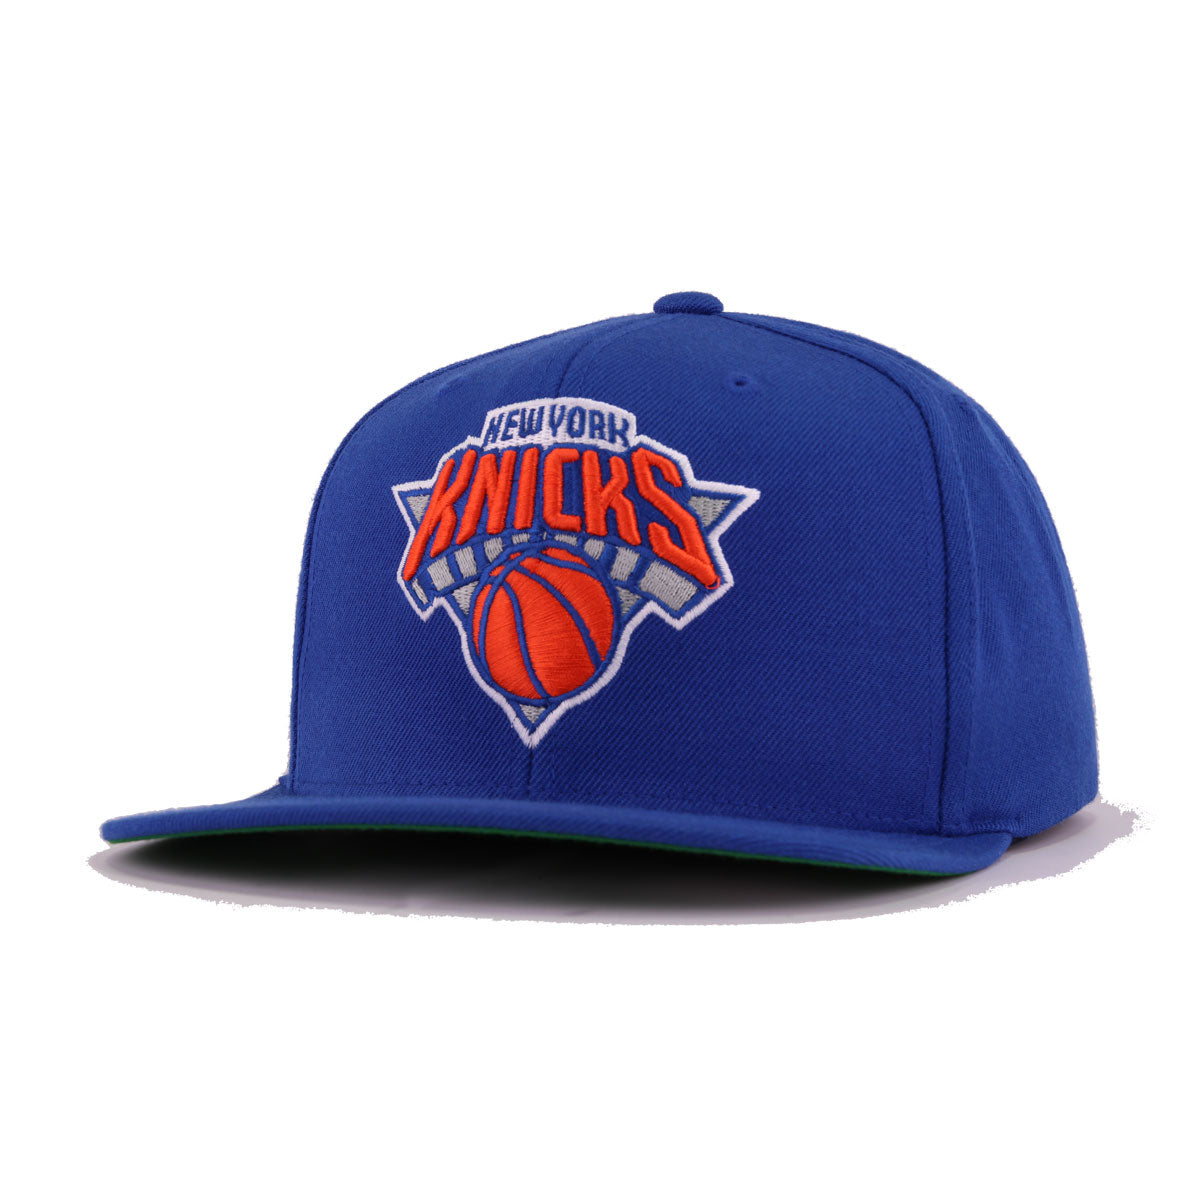 New York Knicks Light Royal Blue Mitchell and Ness Snapback